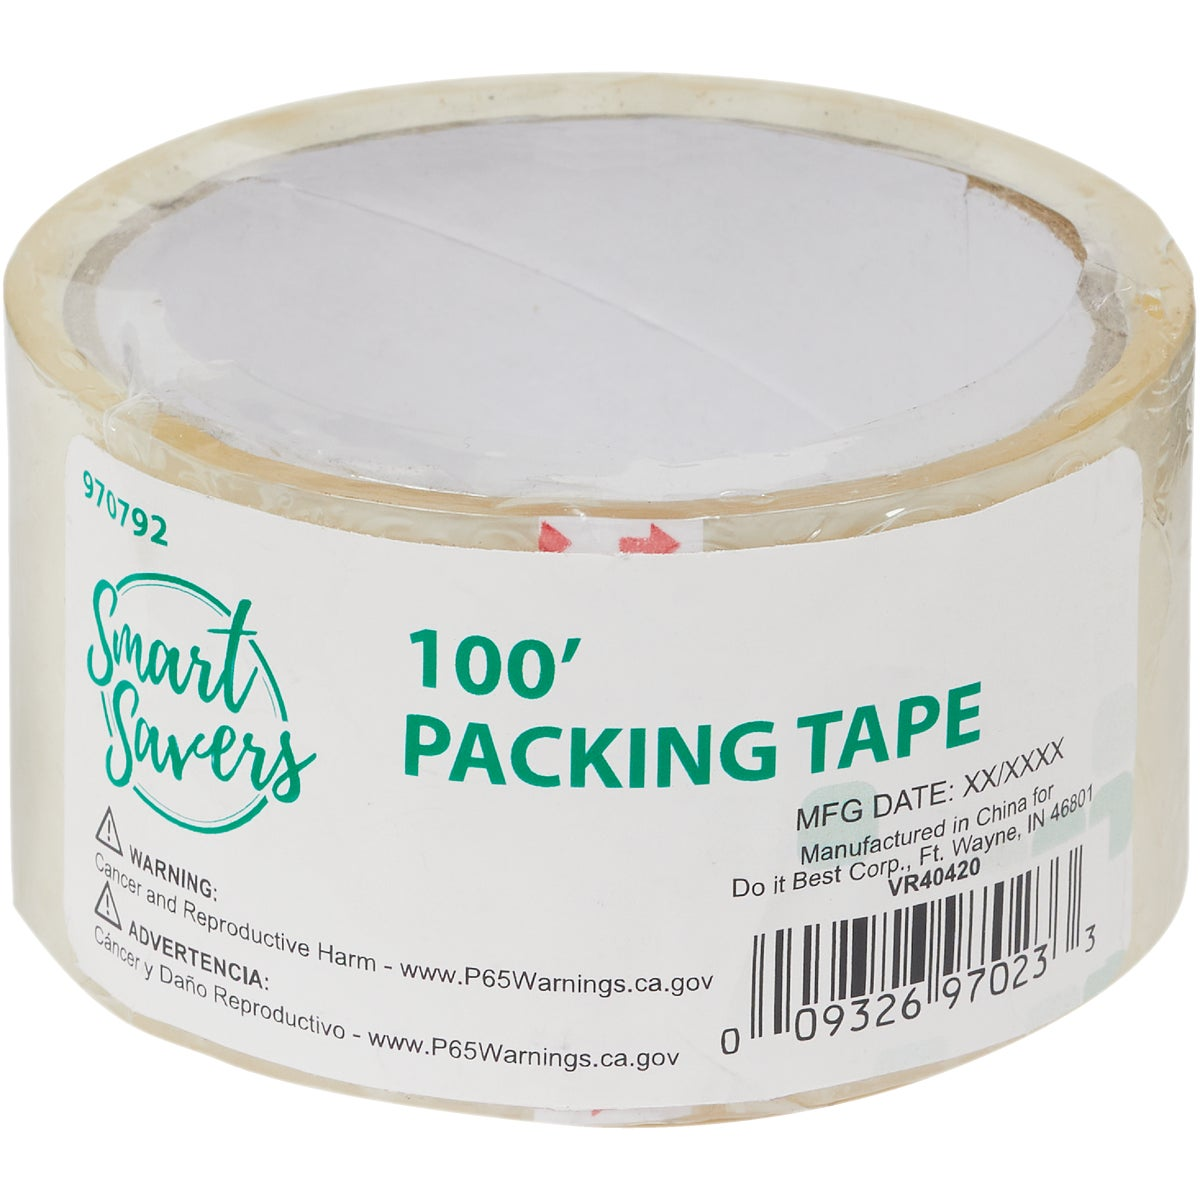 2PK PACKING TAPE - CC101053 by Do it Best